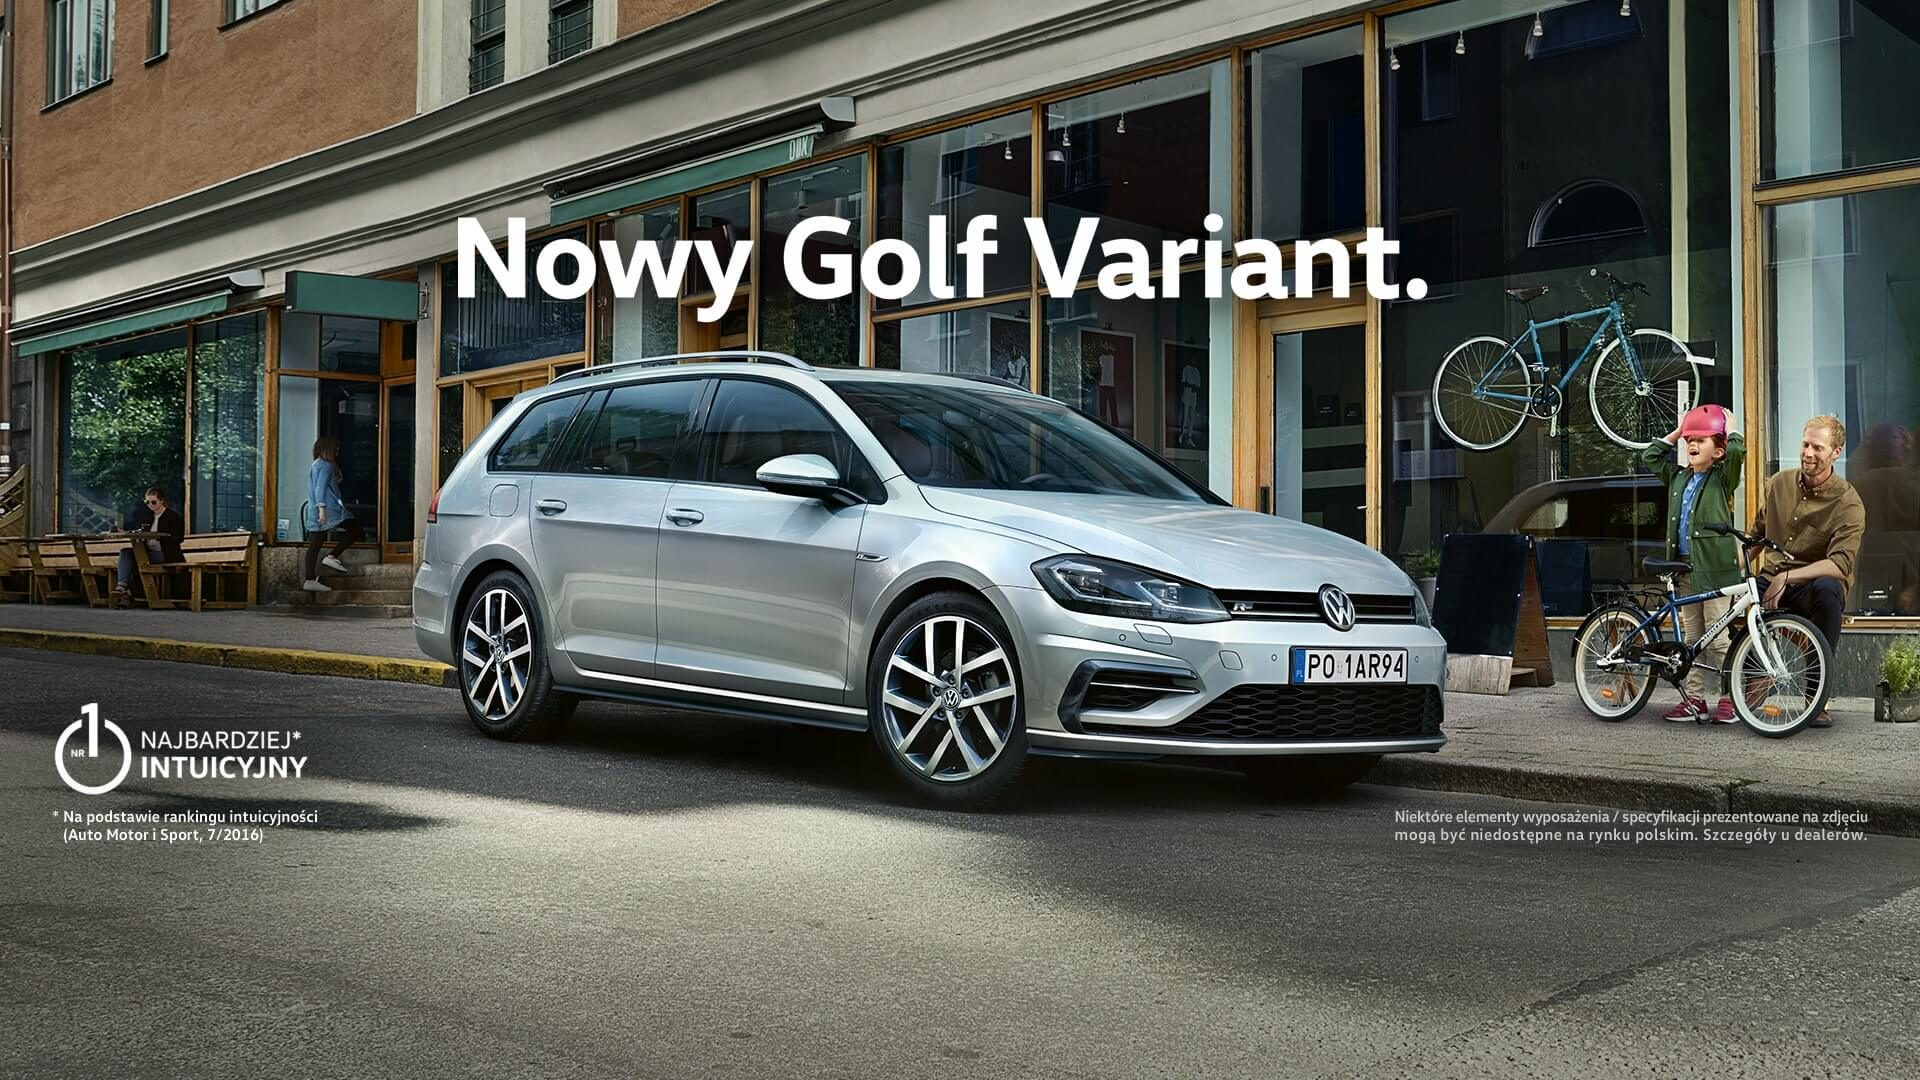 Nowy Golf Variant